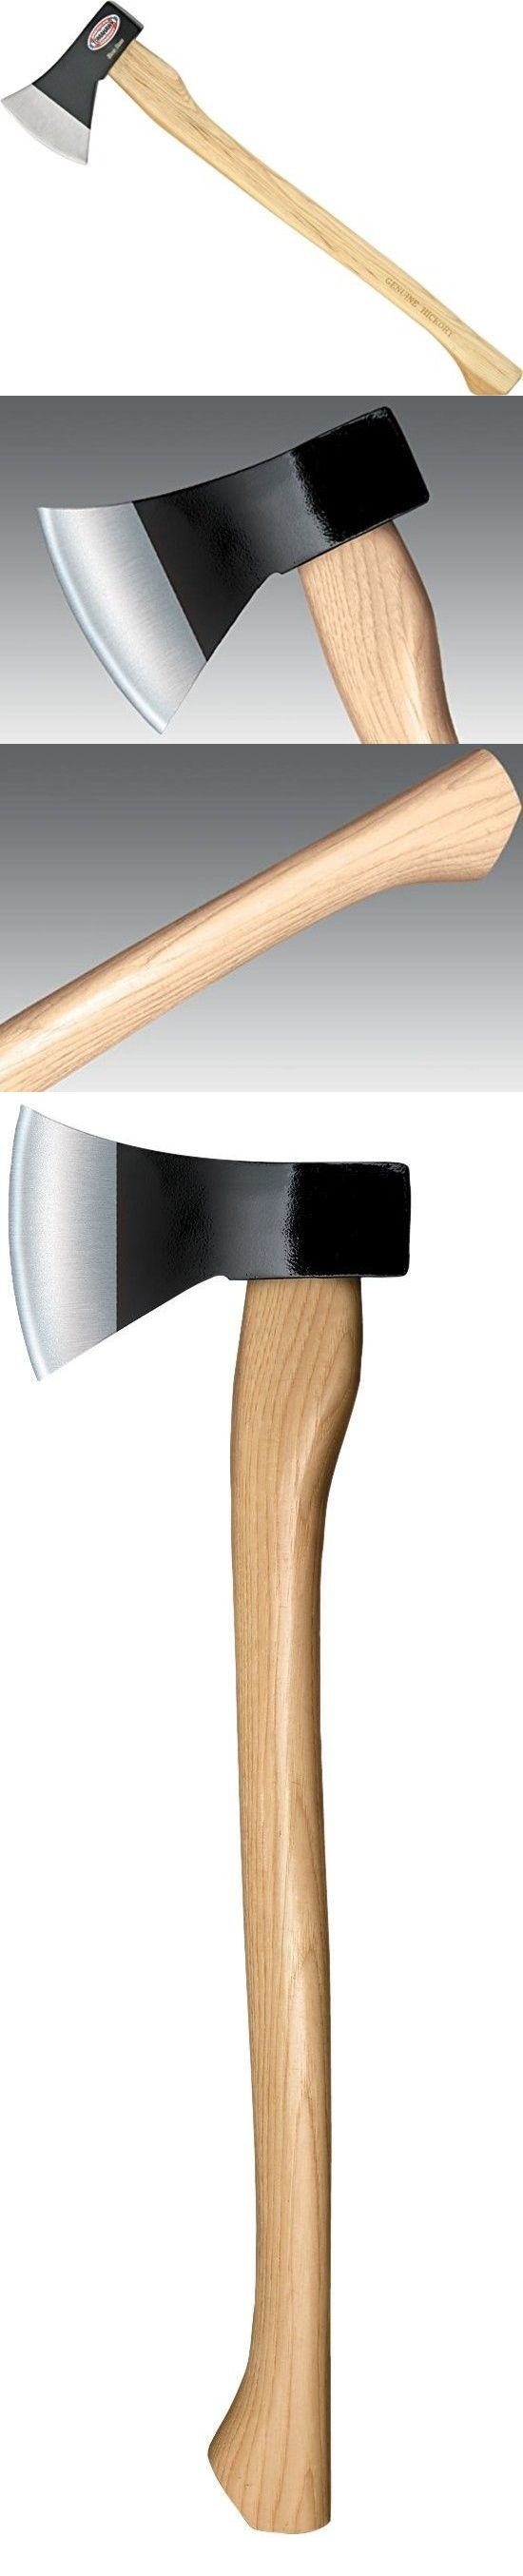 Camping Hatchets and Axes 75234: Cold Steel Trail Boss Hickory Handle Rugged Outdoor Camping Axe -> BUY IT NOW ONLY: $31.92 on eBay!